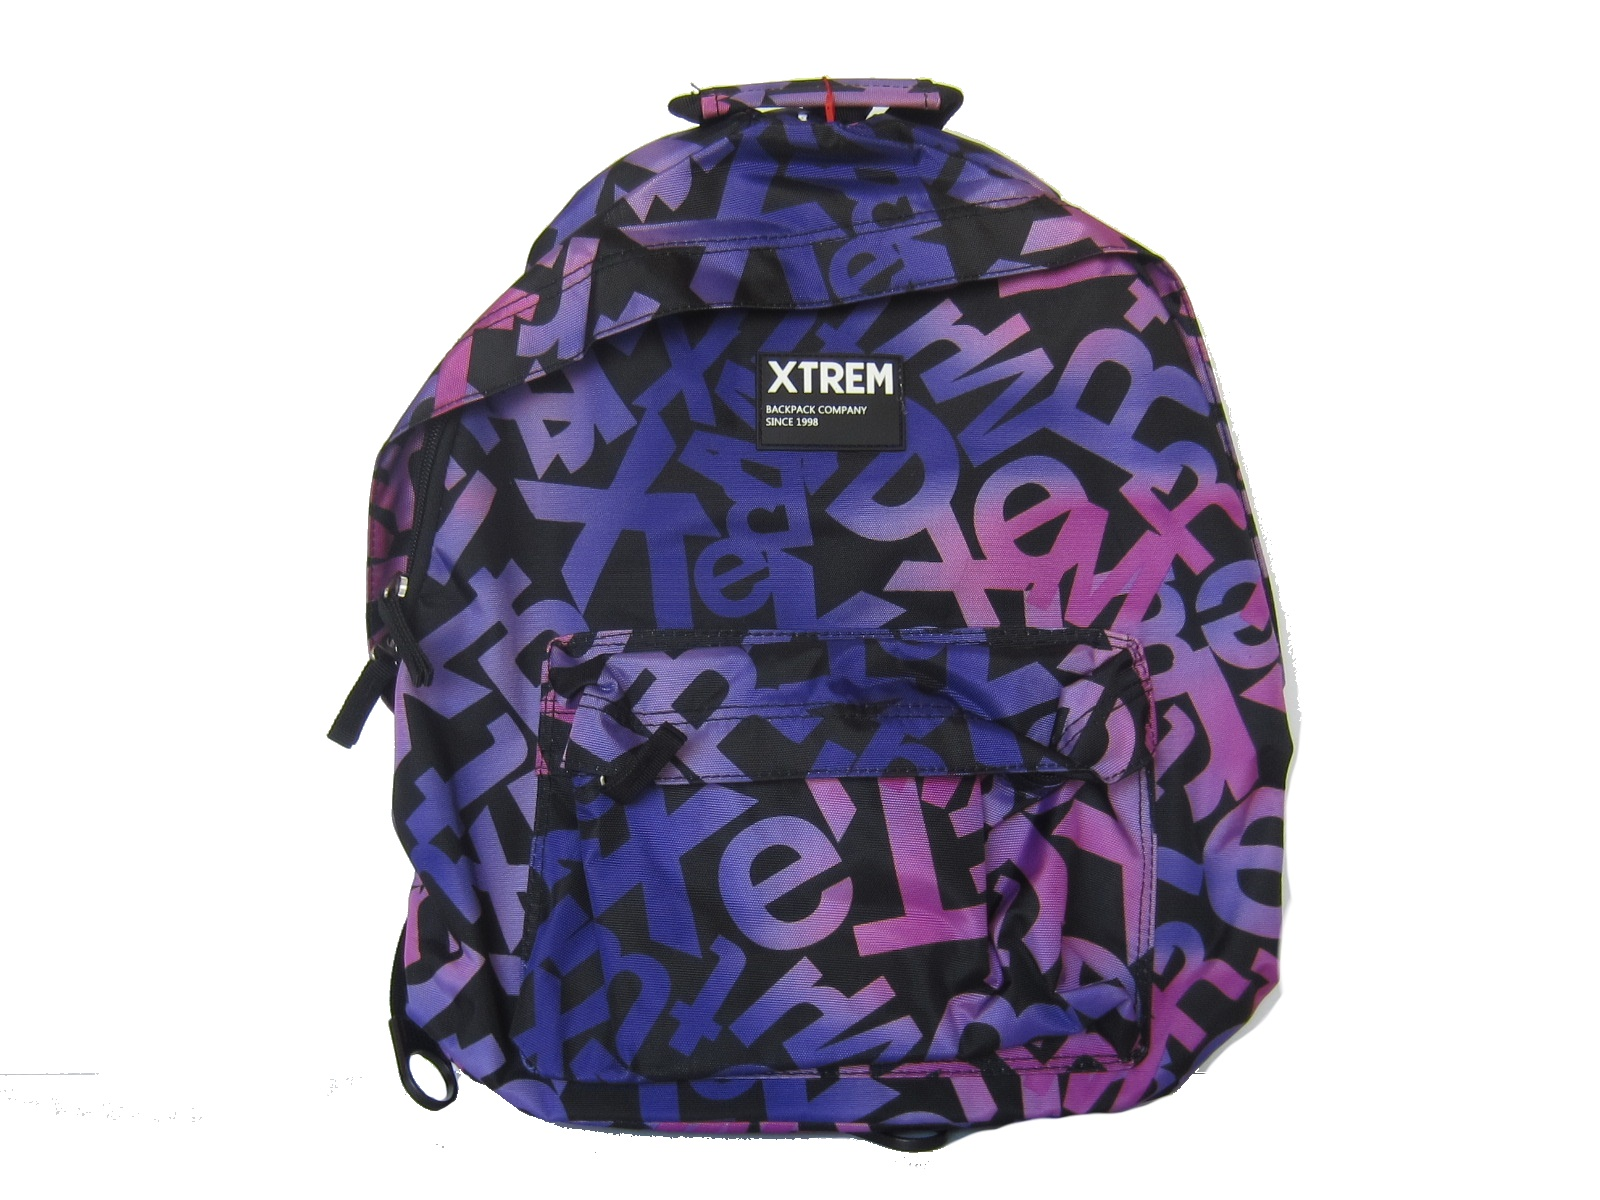 JOY 720 BACKPACK PURPLE/LETTER 87585-2926